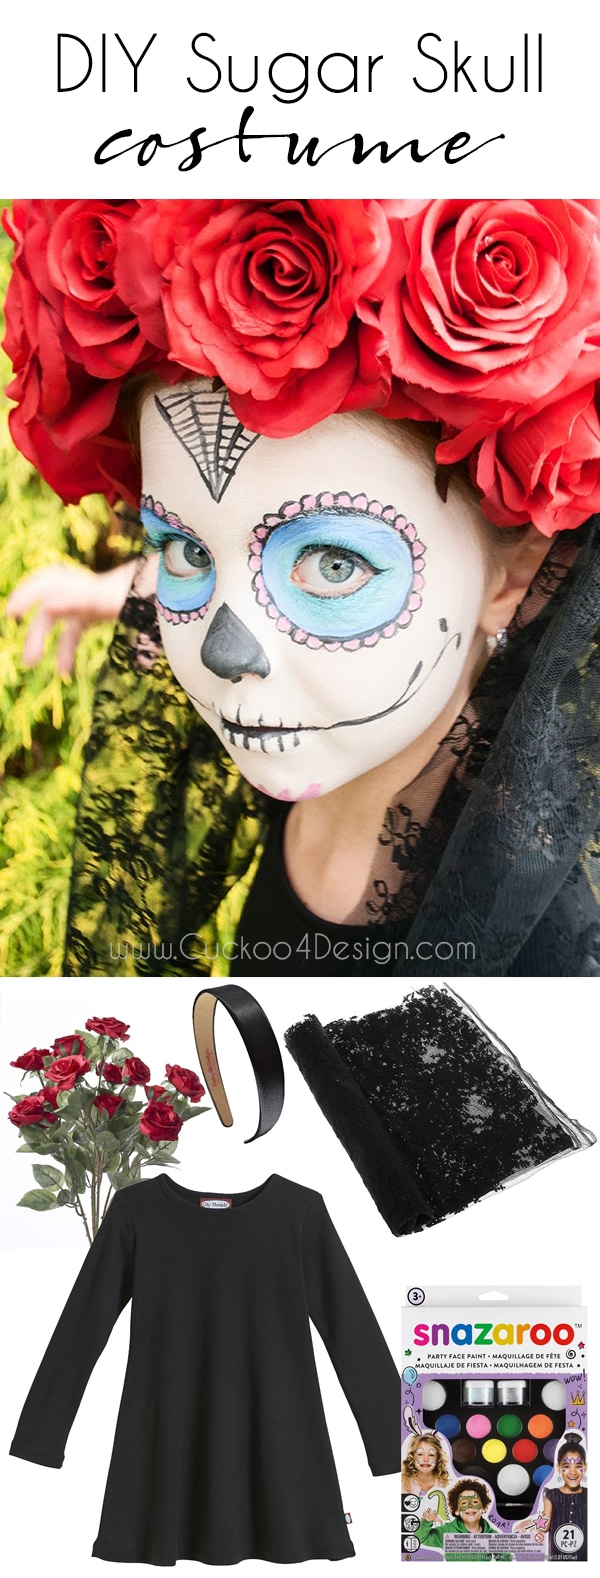 Kids DIY Sugar Skull Costume - Day of the Dead costume | Dia de Los Muertos | sugar skull | Kids halloween costume | Homemade costume | cheap costume for kids